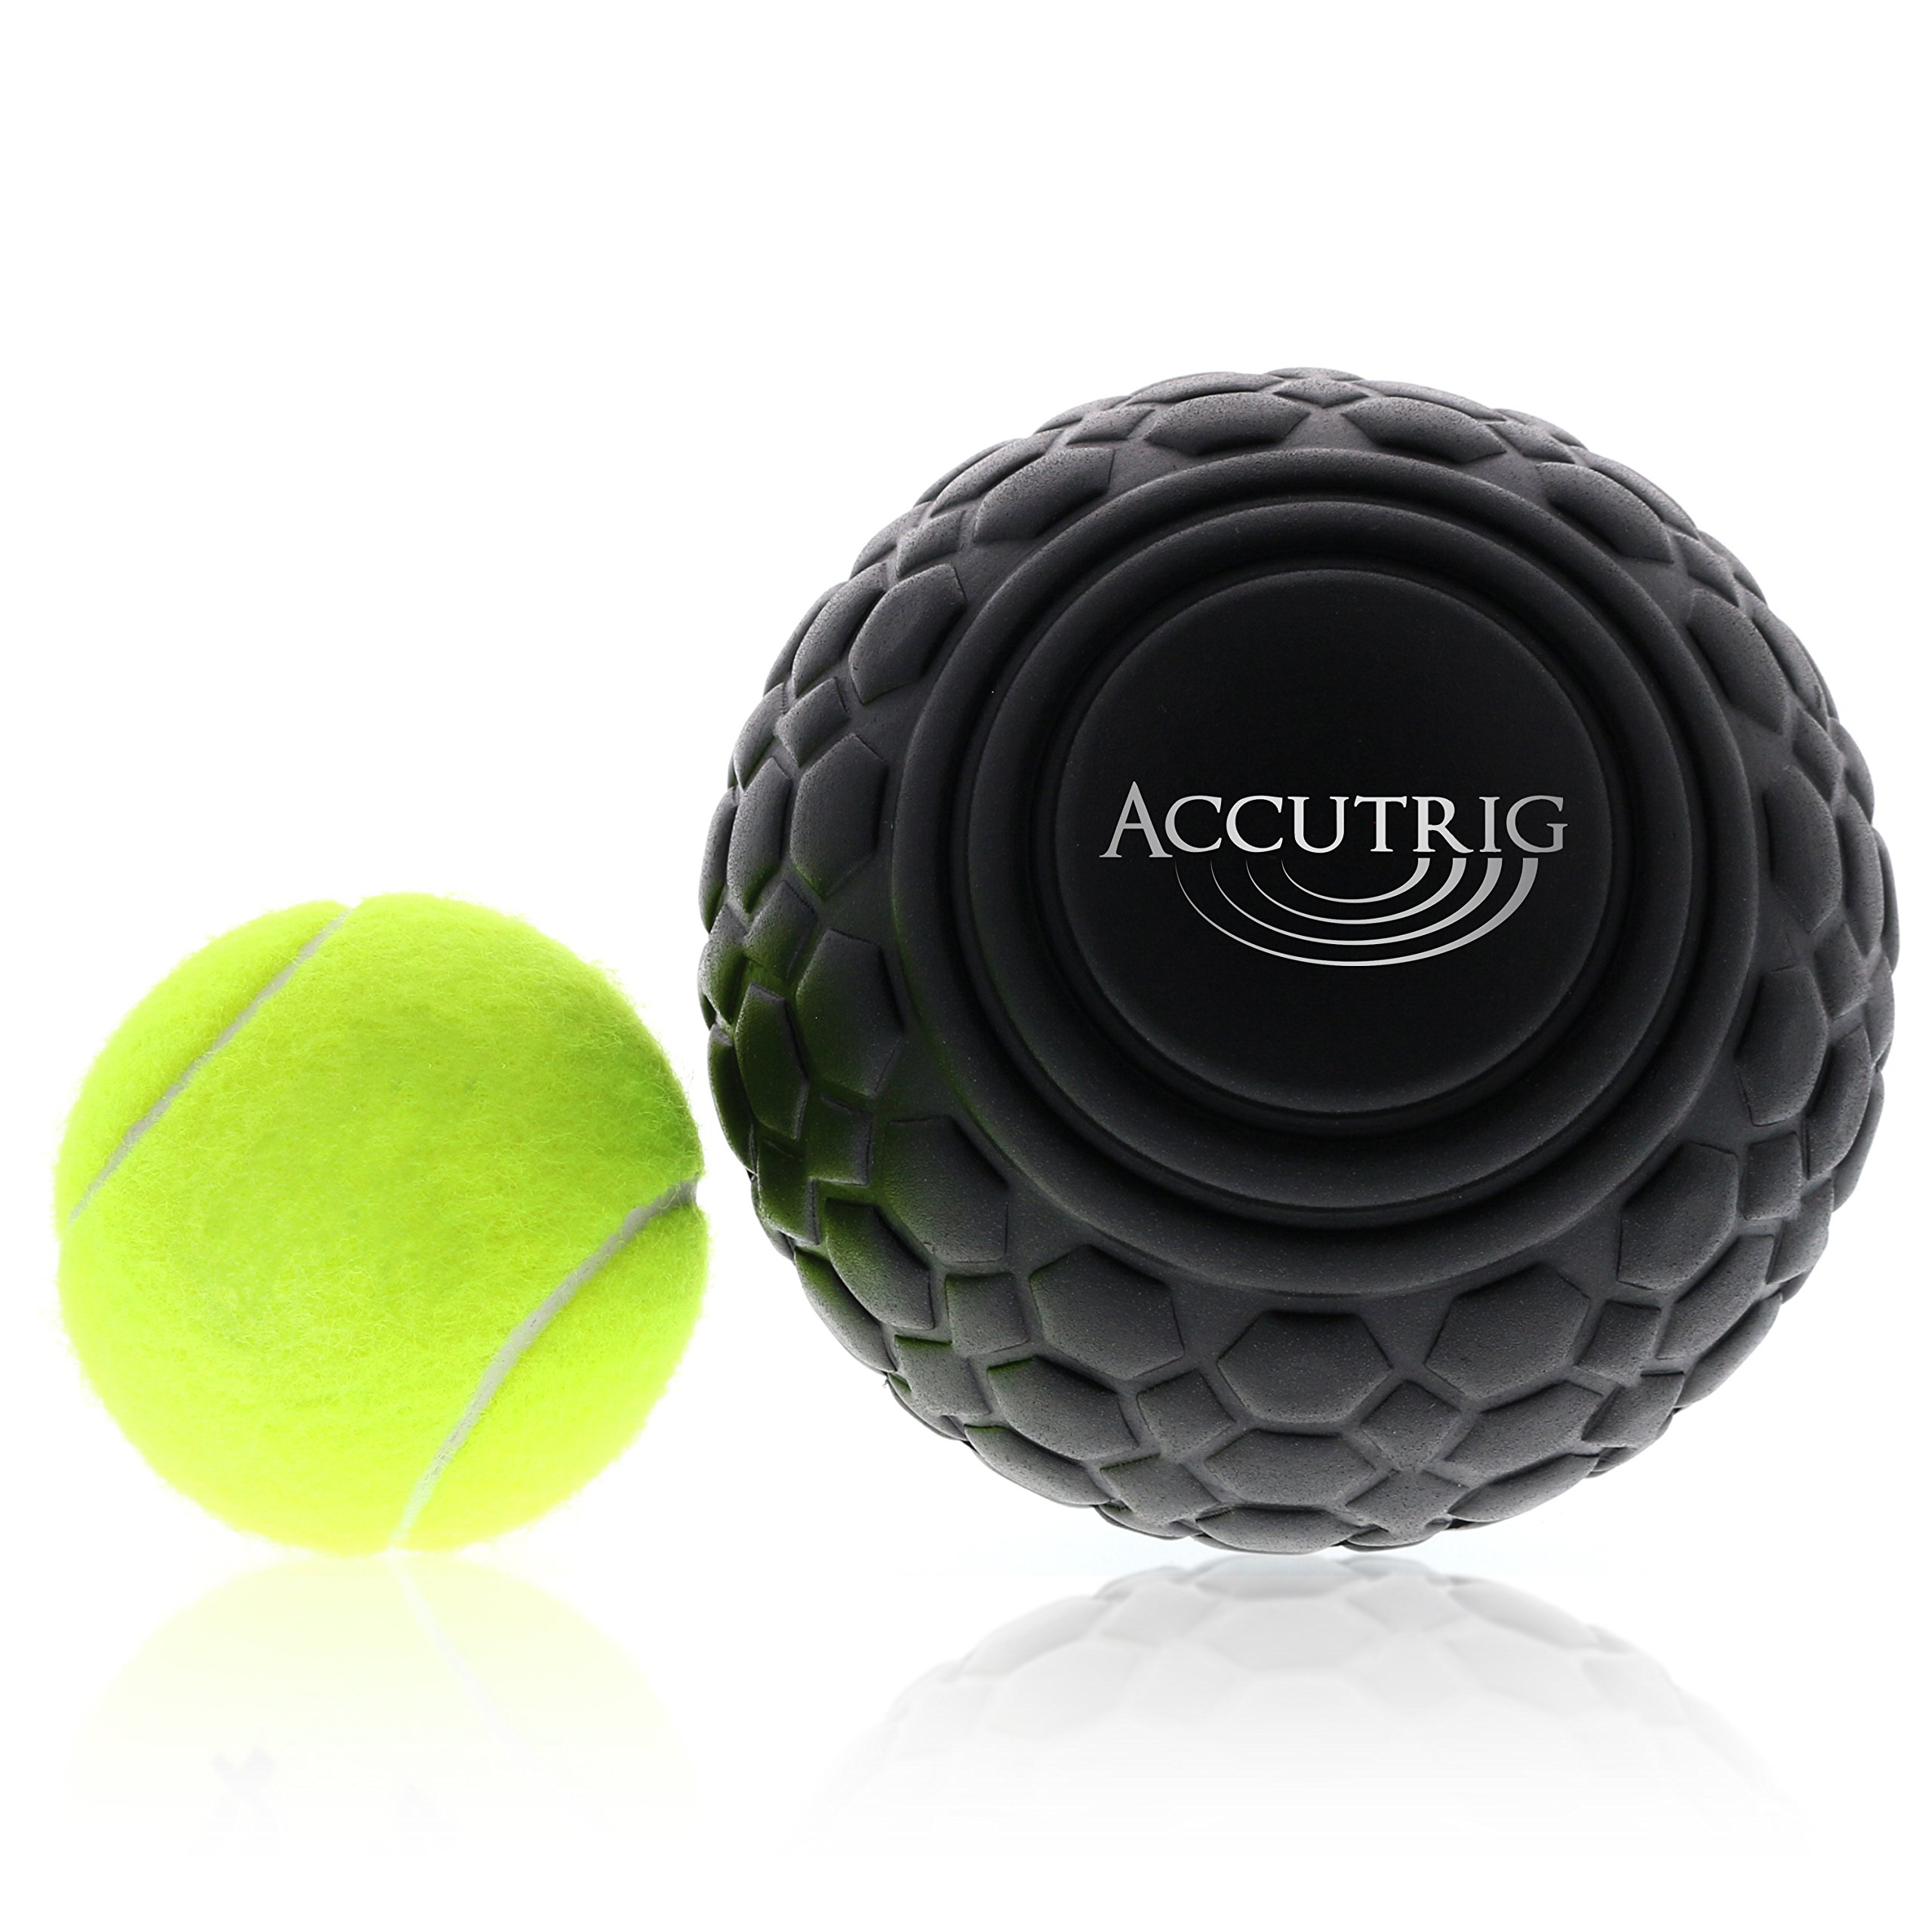 Trigger Point Massage Ball - Myofascial Release Therapy - Deep Tissue Massager - Natural Muscle Relaxer for Full Body, Back, Neck & Shoulder Relief by Accutrig by Accutrig (Image #5)